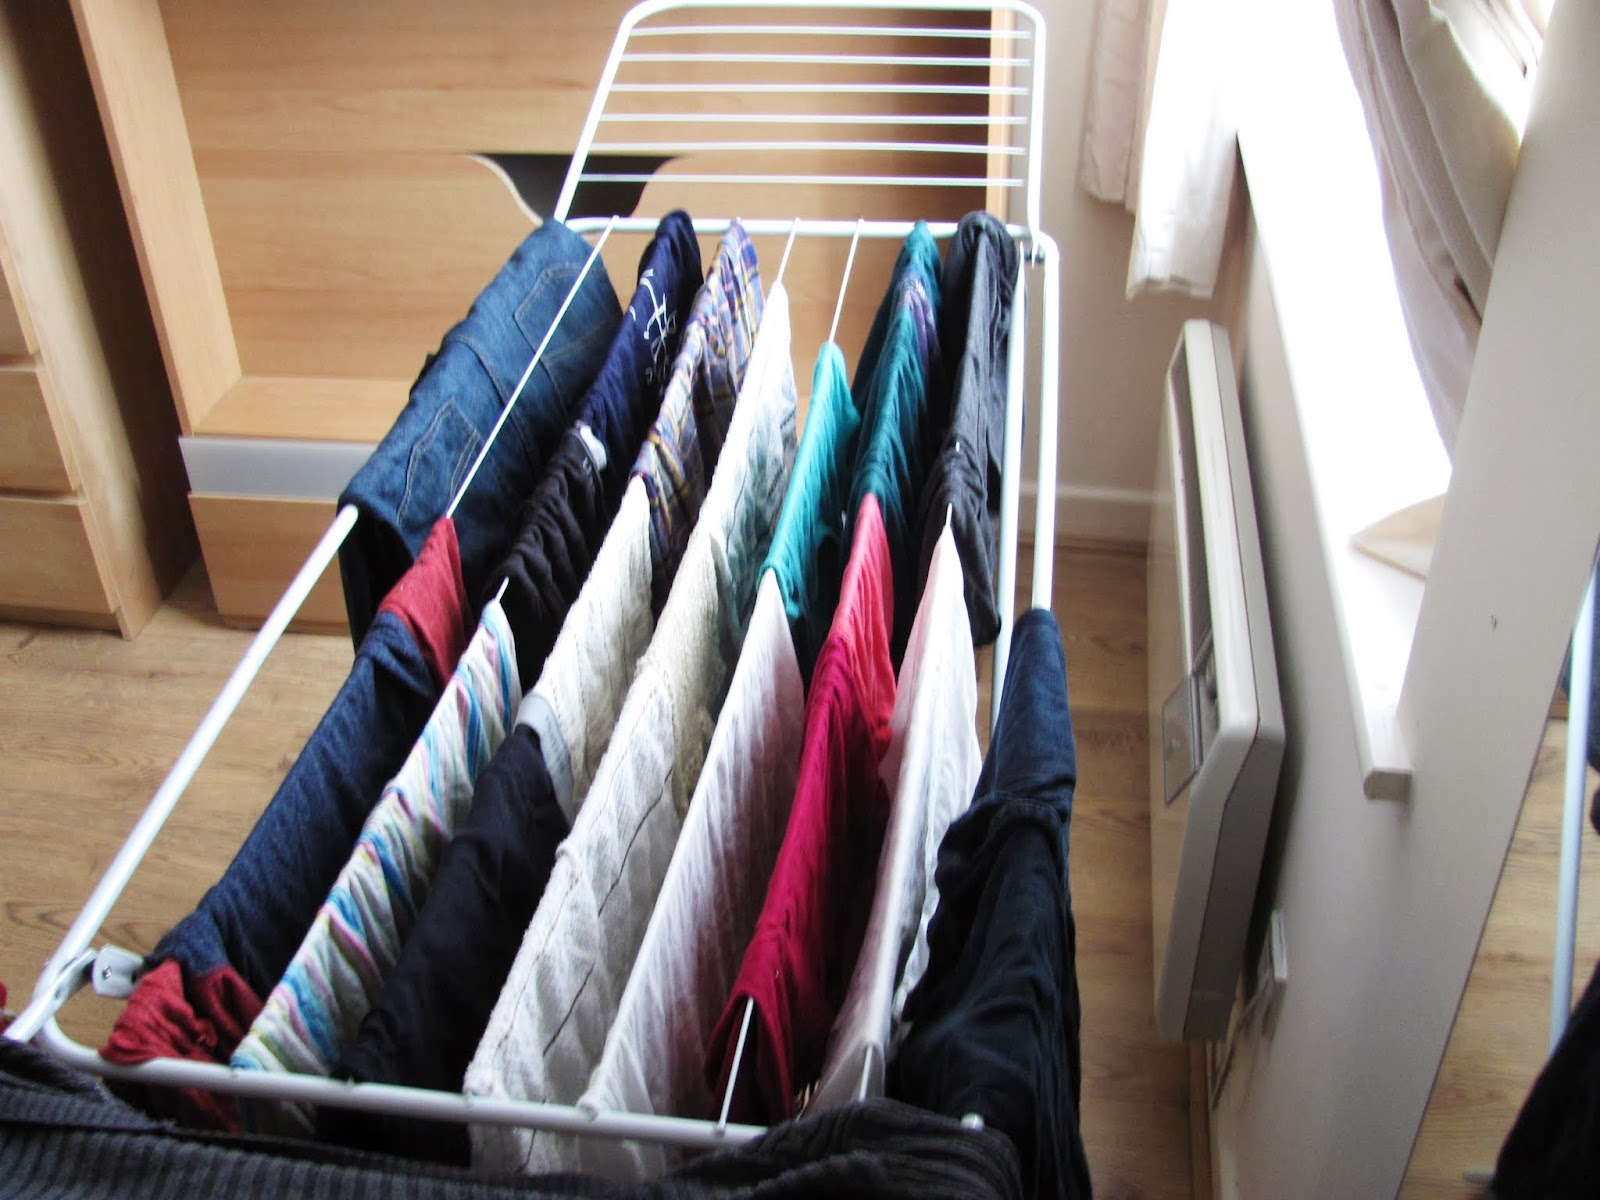 Clothes hand on a collapsible wire drying rack